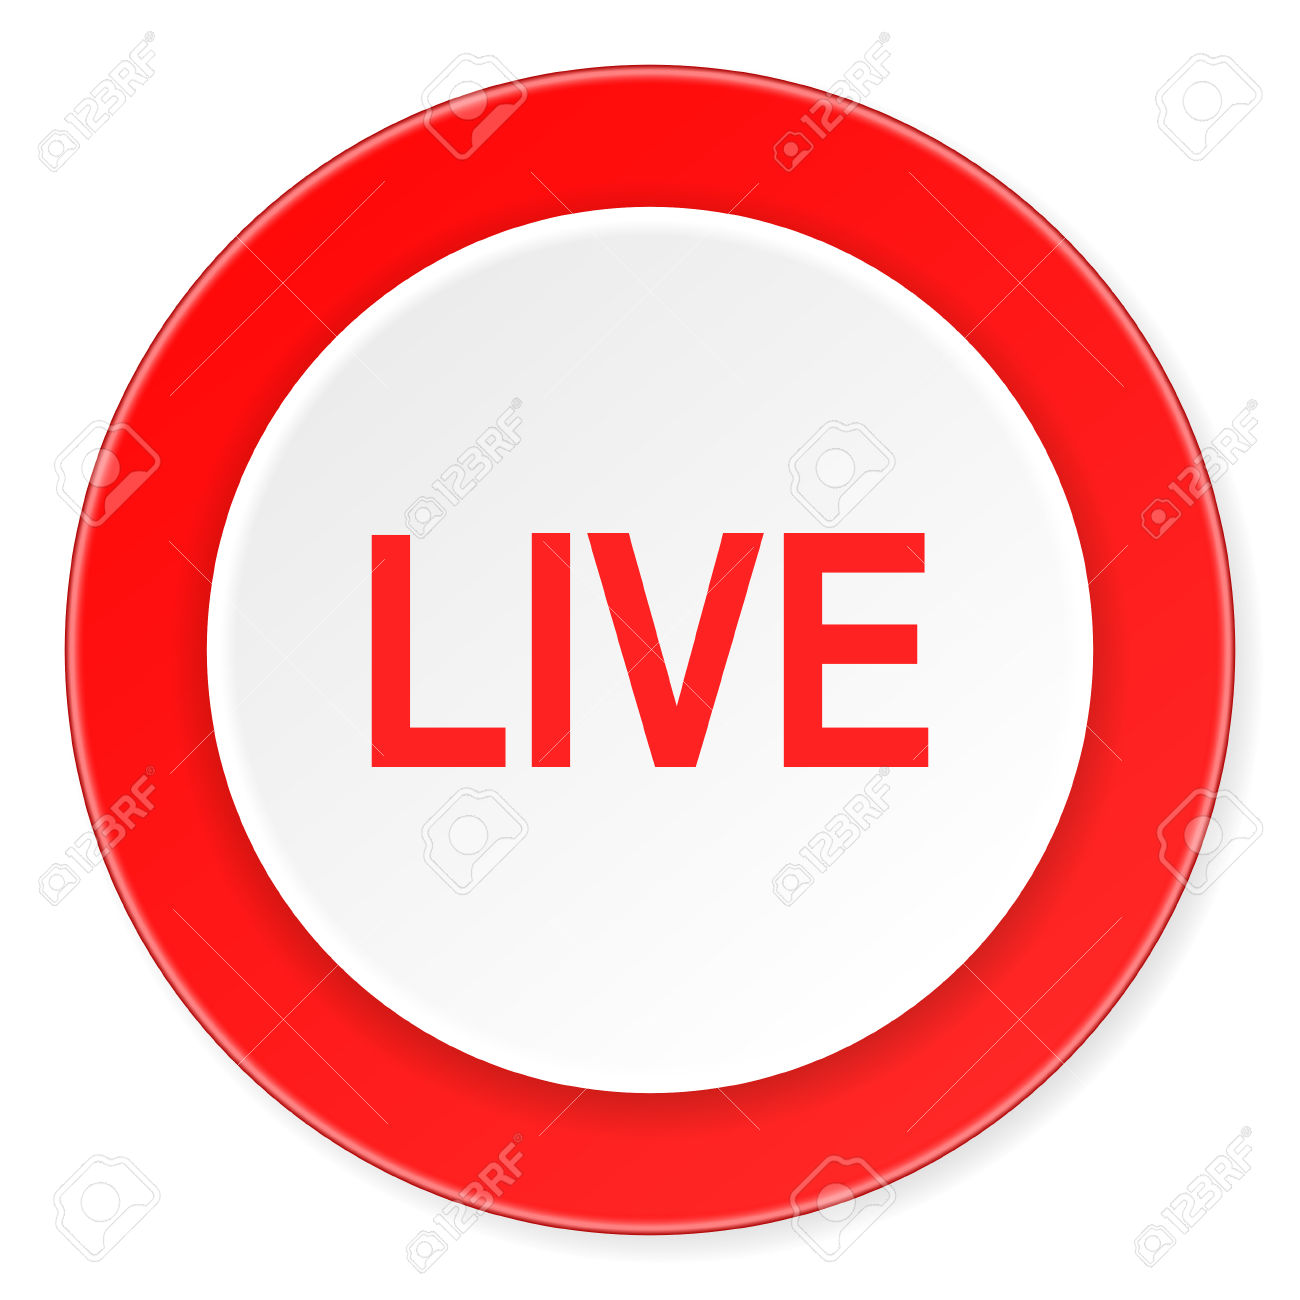 Live Event Cliparts, Stock Vector And Royalty Free Live Event.